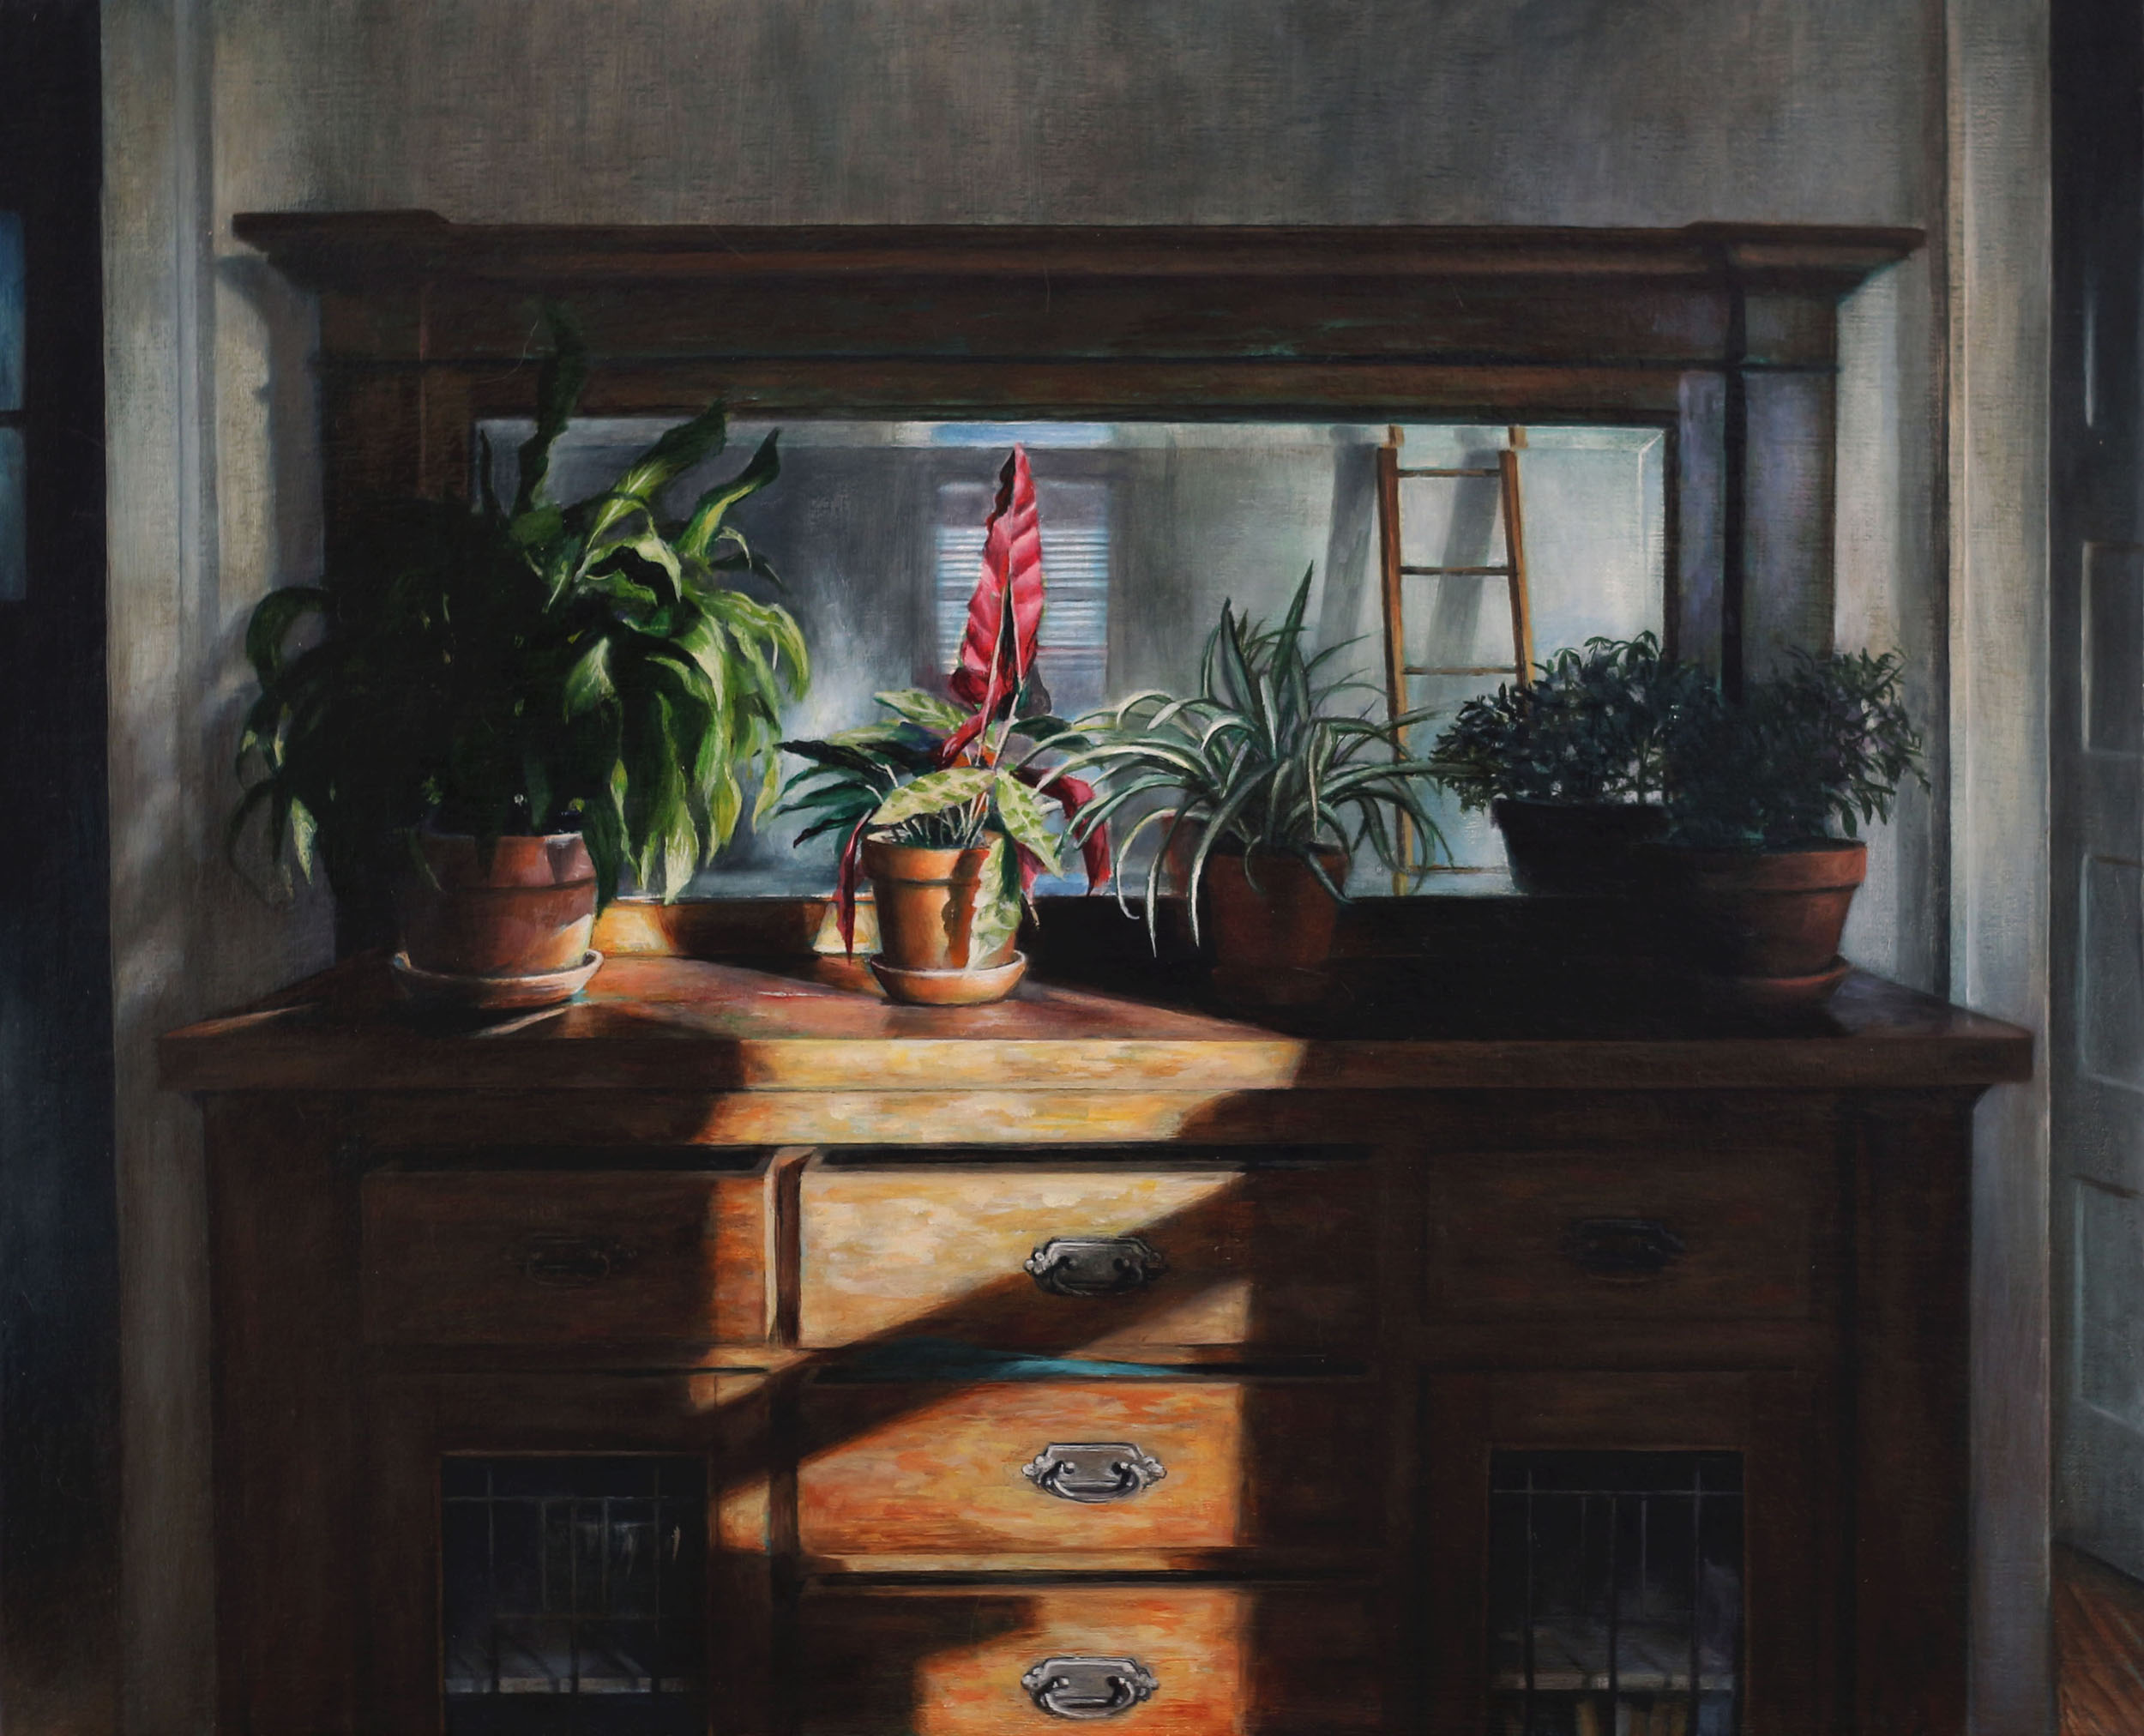 Sunlit Plants   2017  Oil on linen  16 x 20 inches